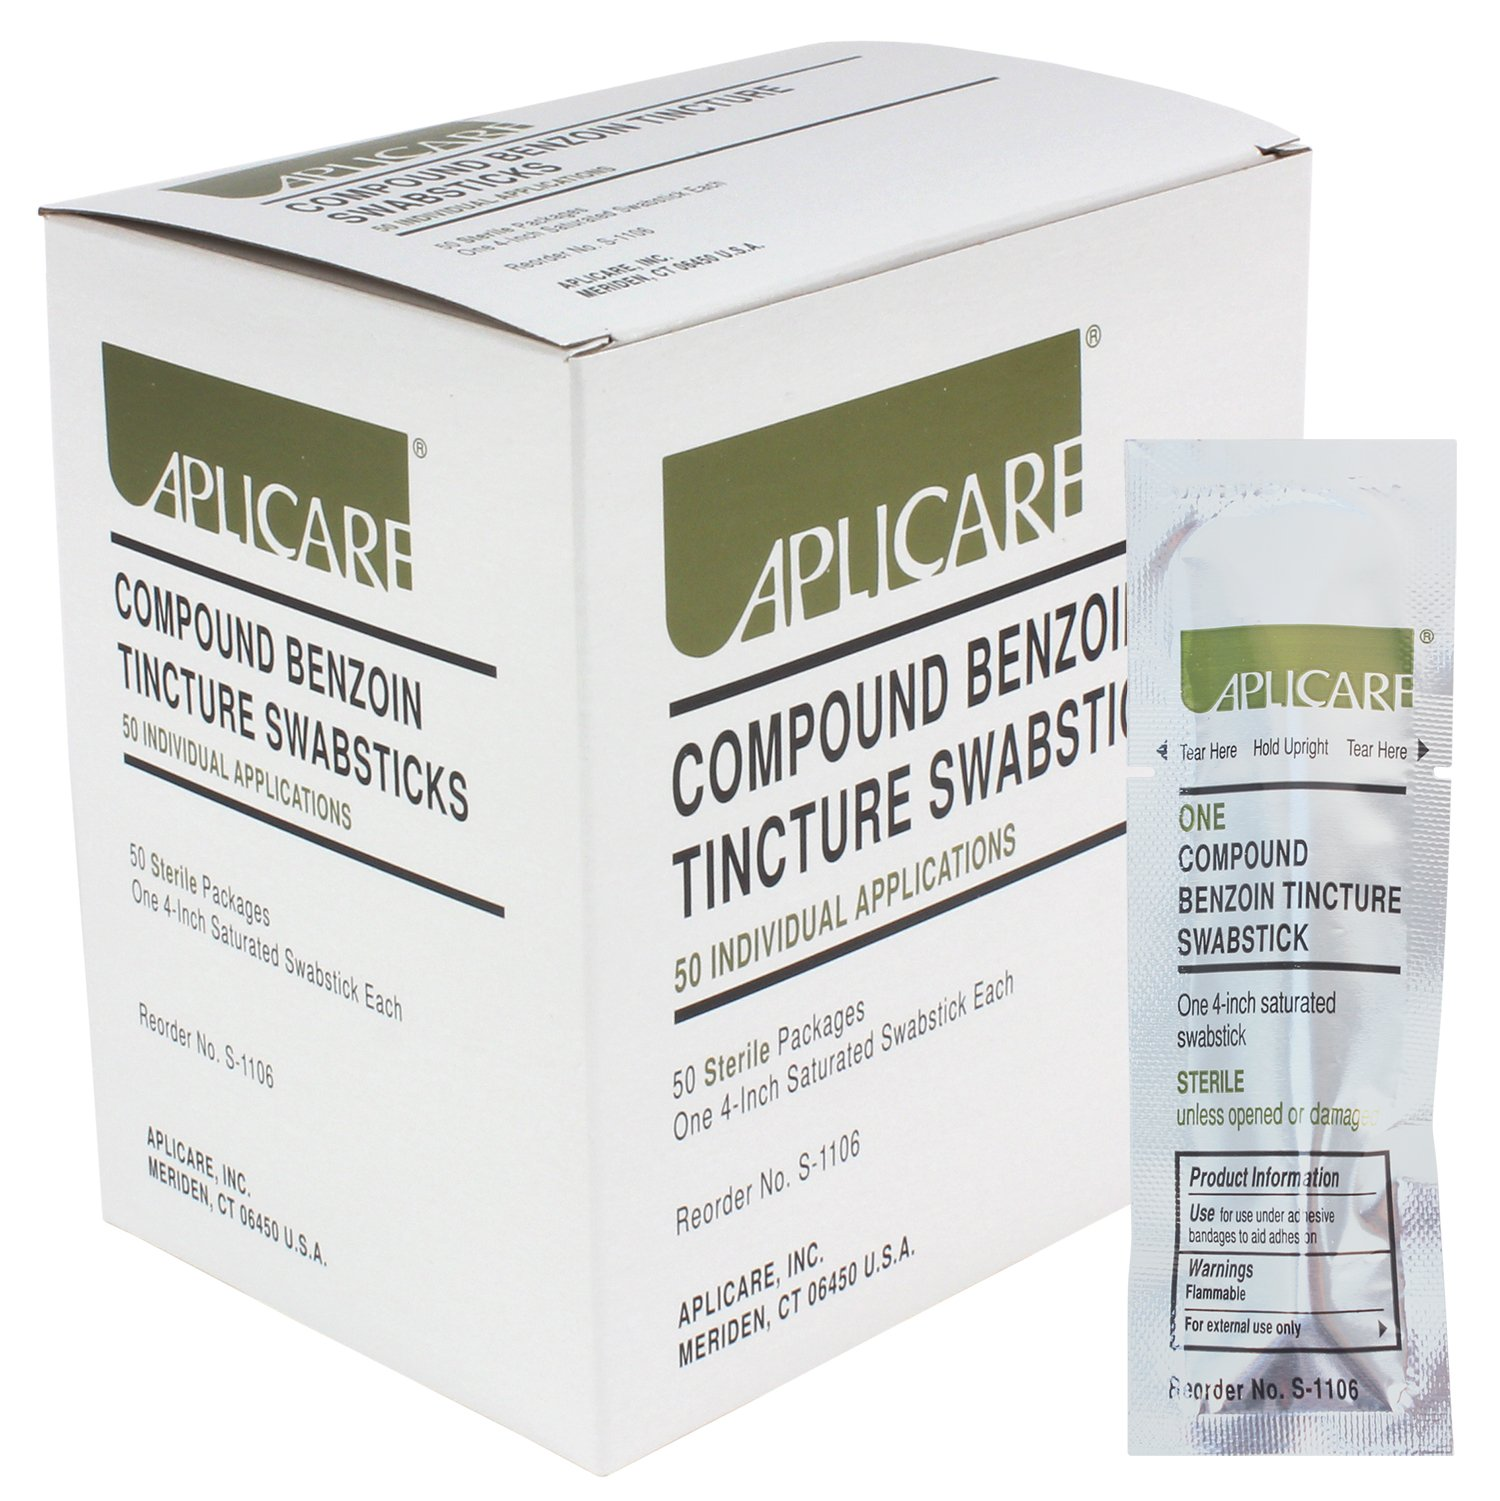 Compound Benzoin Tincture Swabsticks - 50 Individual Sterile Applications